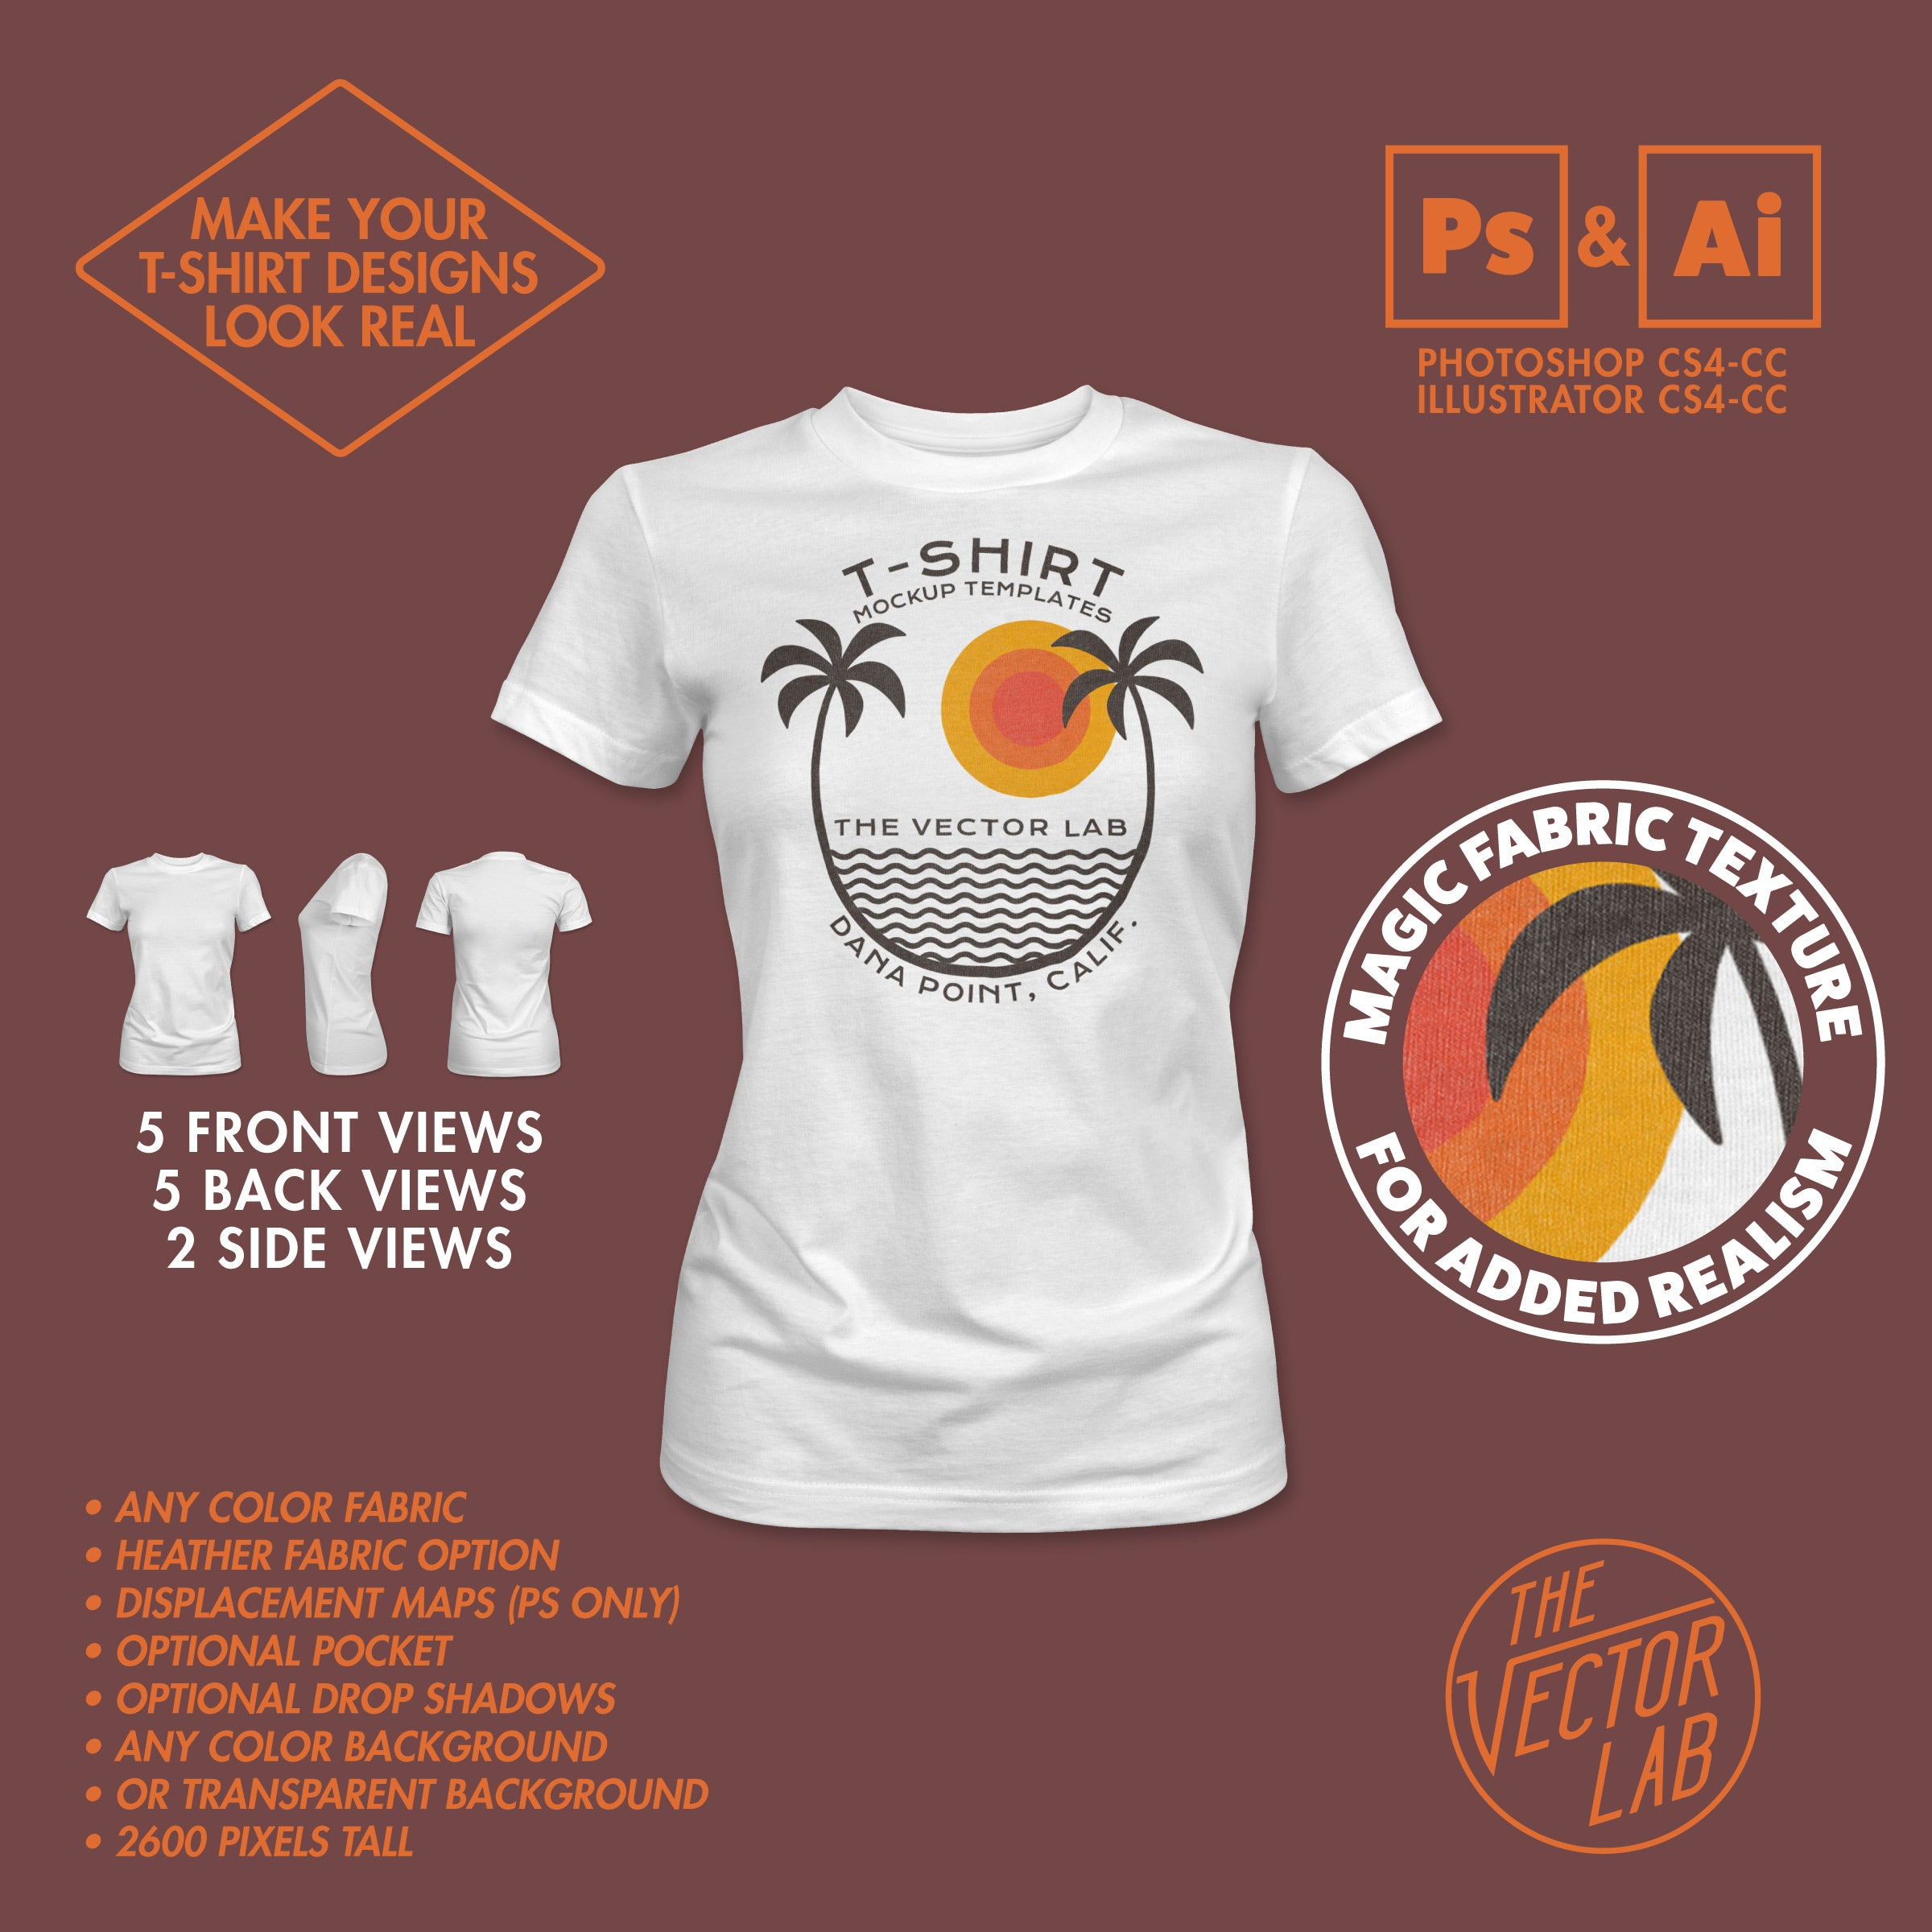 398f8194b ... Women's T-Shirt Mockup Templates for Photoshop and Illustrator ...